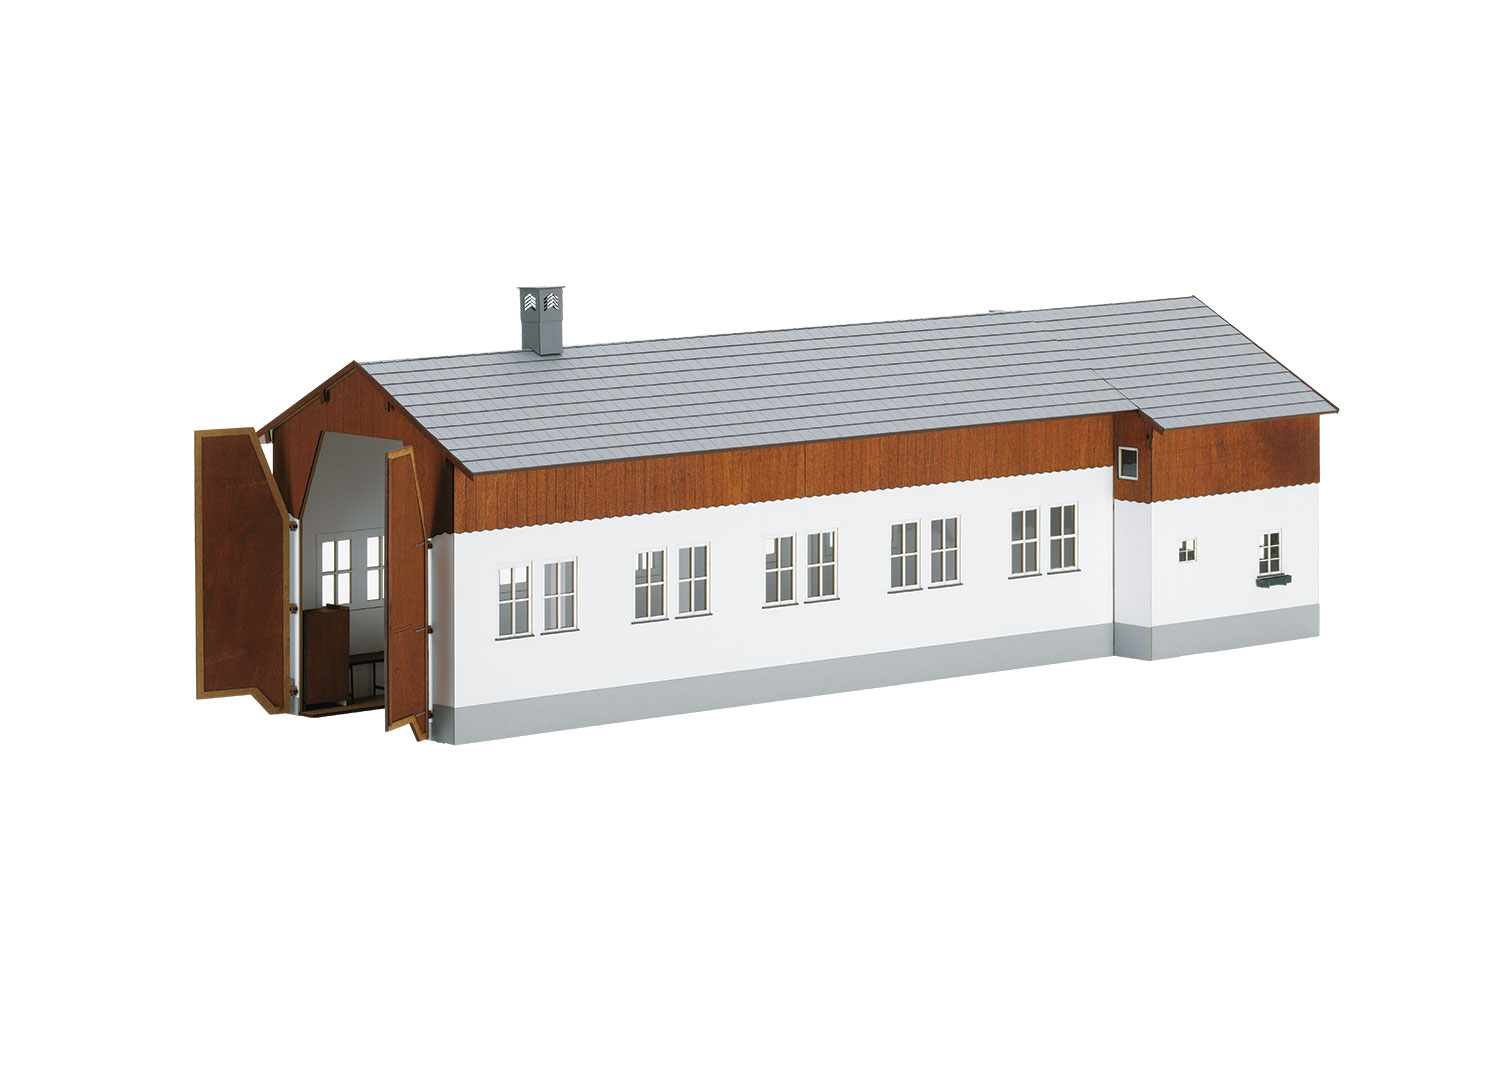 Building Kit of the Frasdorf (Bavaria) Single-Stall Locomotive Shed with a Locomotive Engineer's Residence